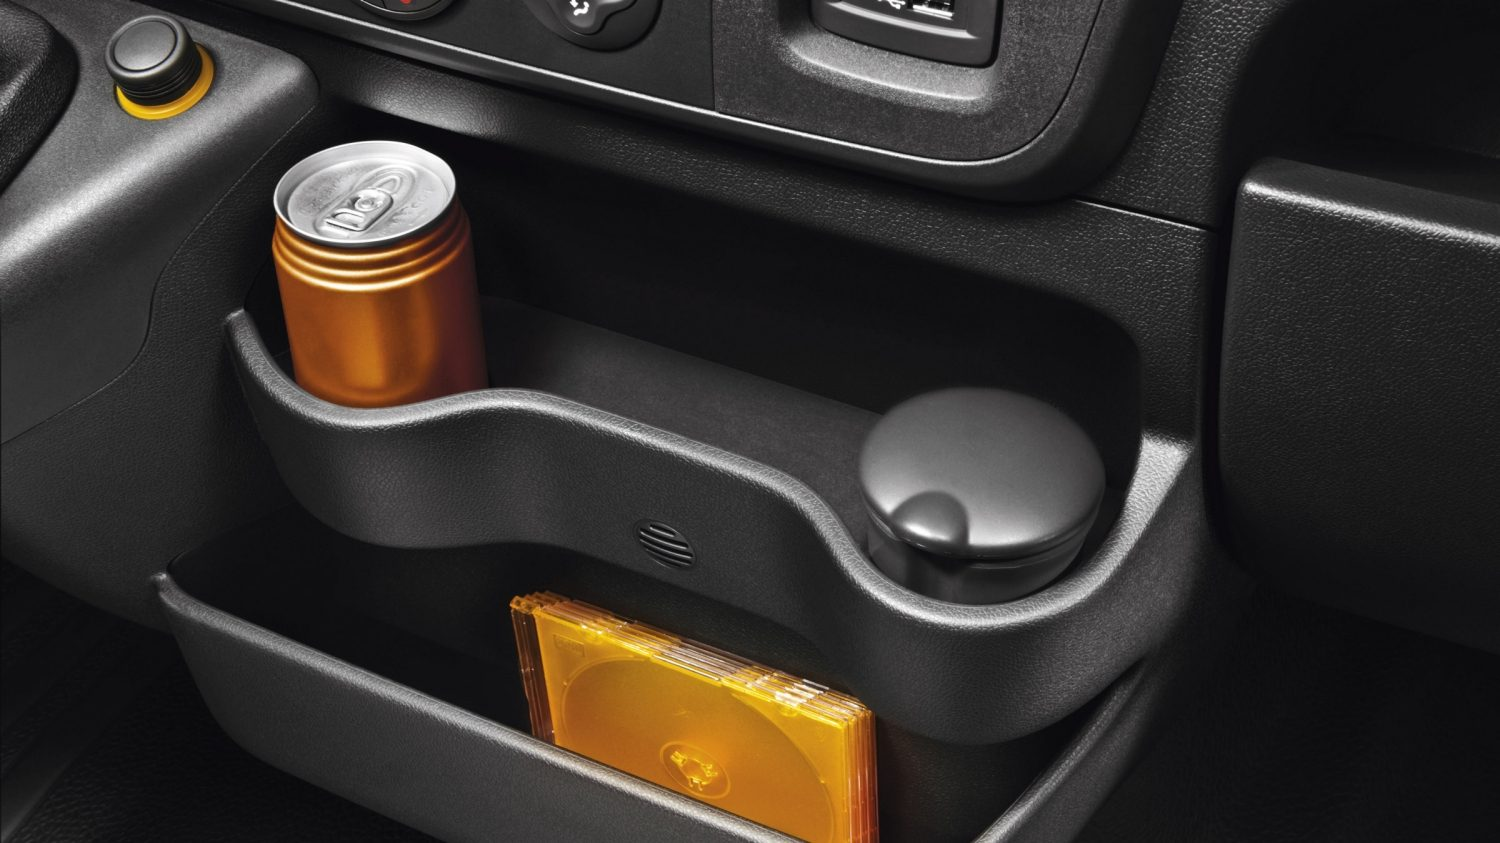 Nissan NV400 - Two level centre storage